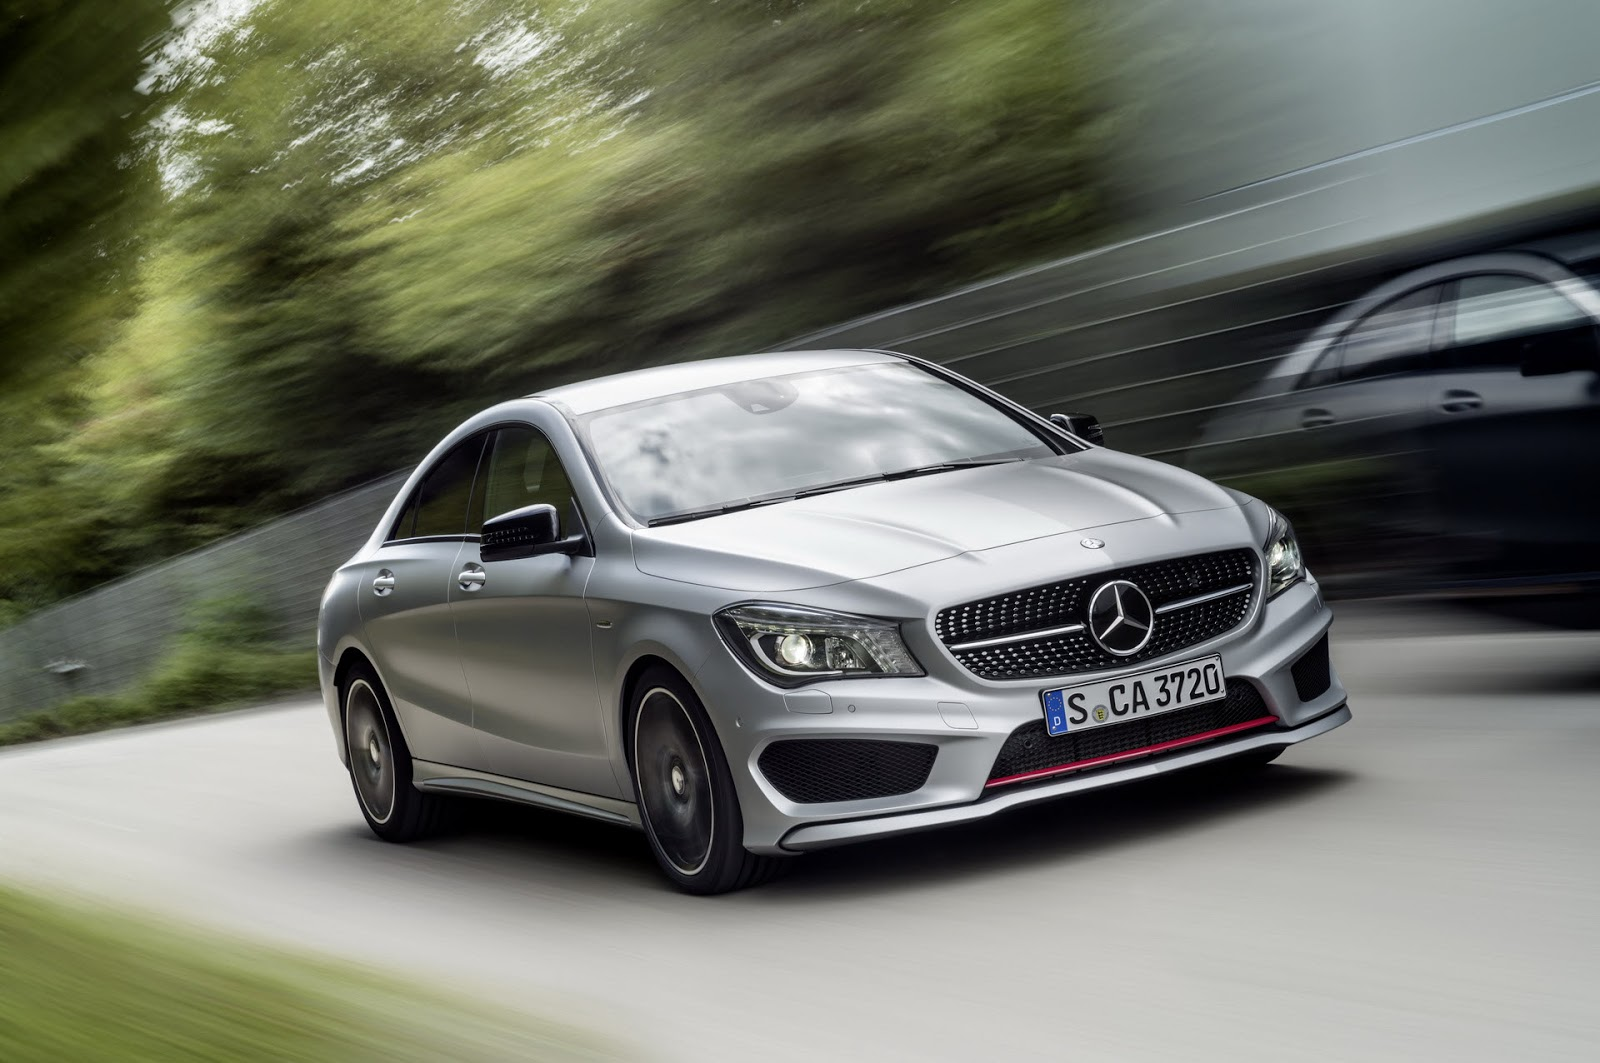 Mercedes Benz Cla 250 Sport Cla 45 Amg Racing Series